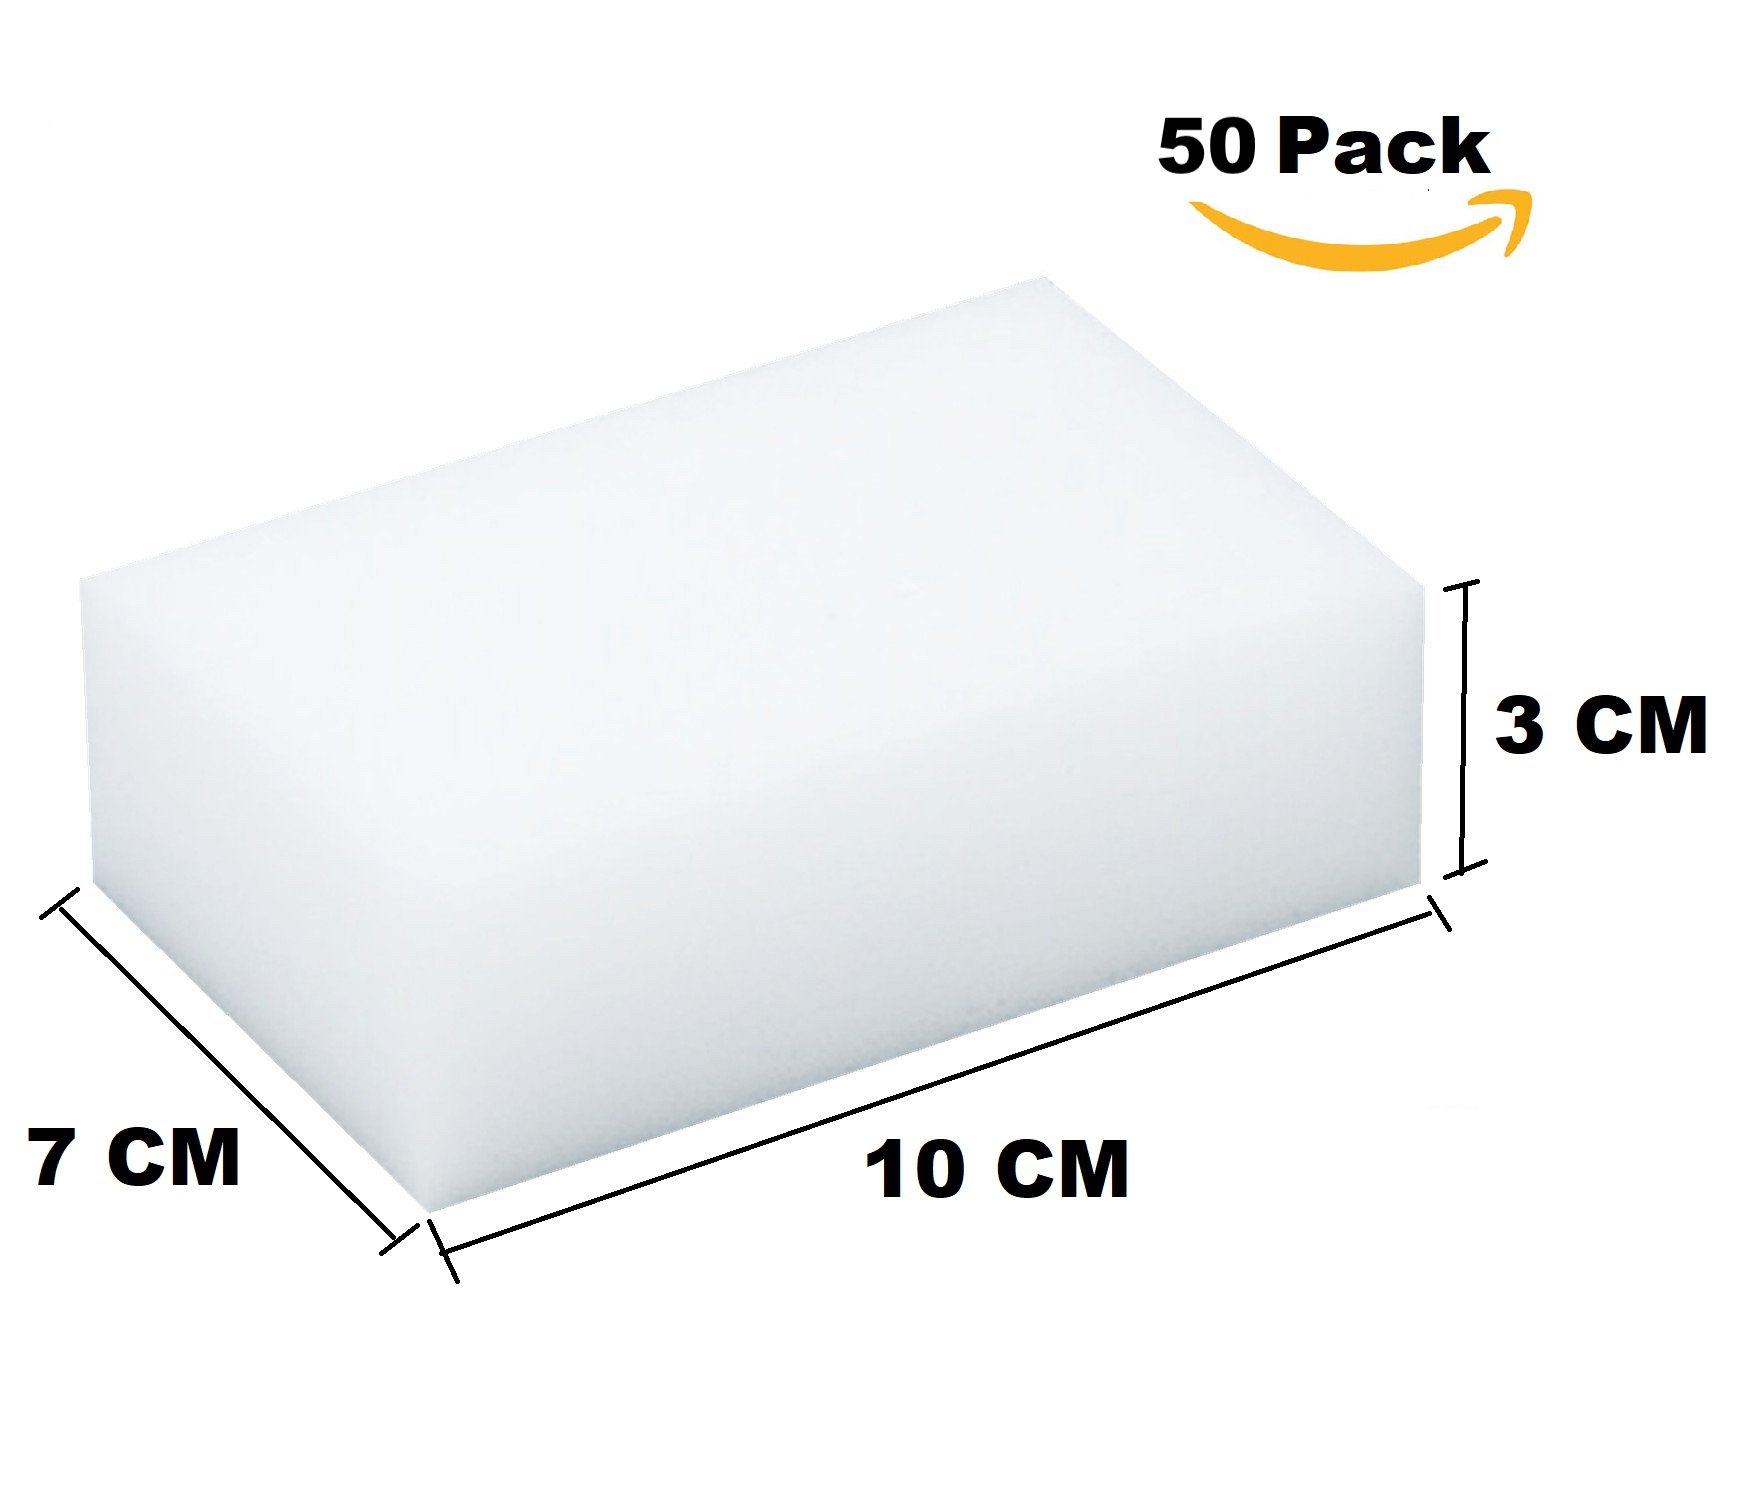 MAGIC CLEANING ERASER SPONGE - EXTRA THICK - 7x3x10 cm - MELAMINE FOAM UNIVERSAL CLEANER FOR DRYWALL, MARBLE, LEATHER, WOOD, METAL. JUST ADD WATER TO CLEAN ANY SURFACE-THE QUALITY SUPPLIERS (50 Pack)